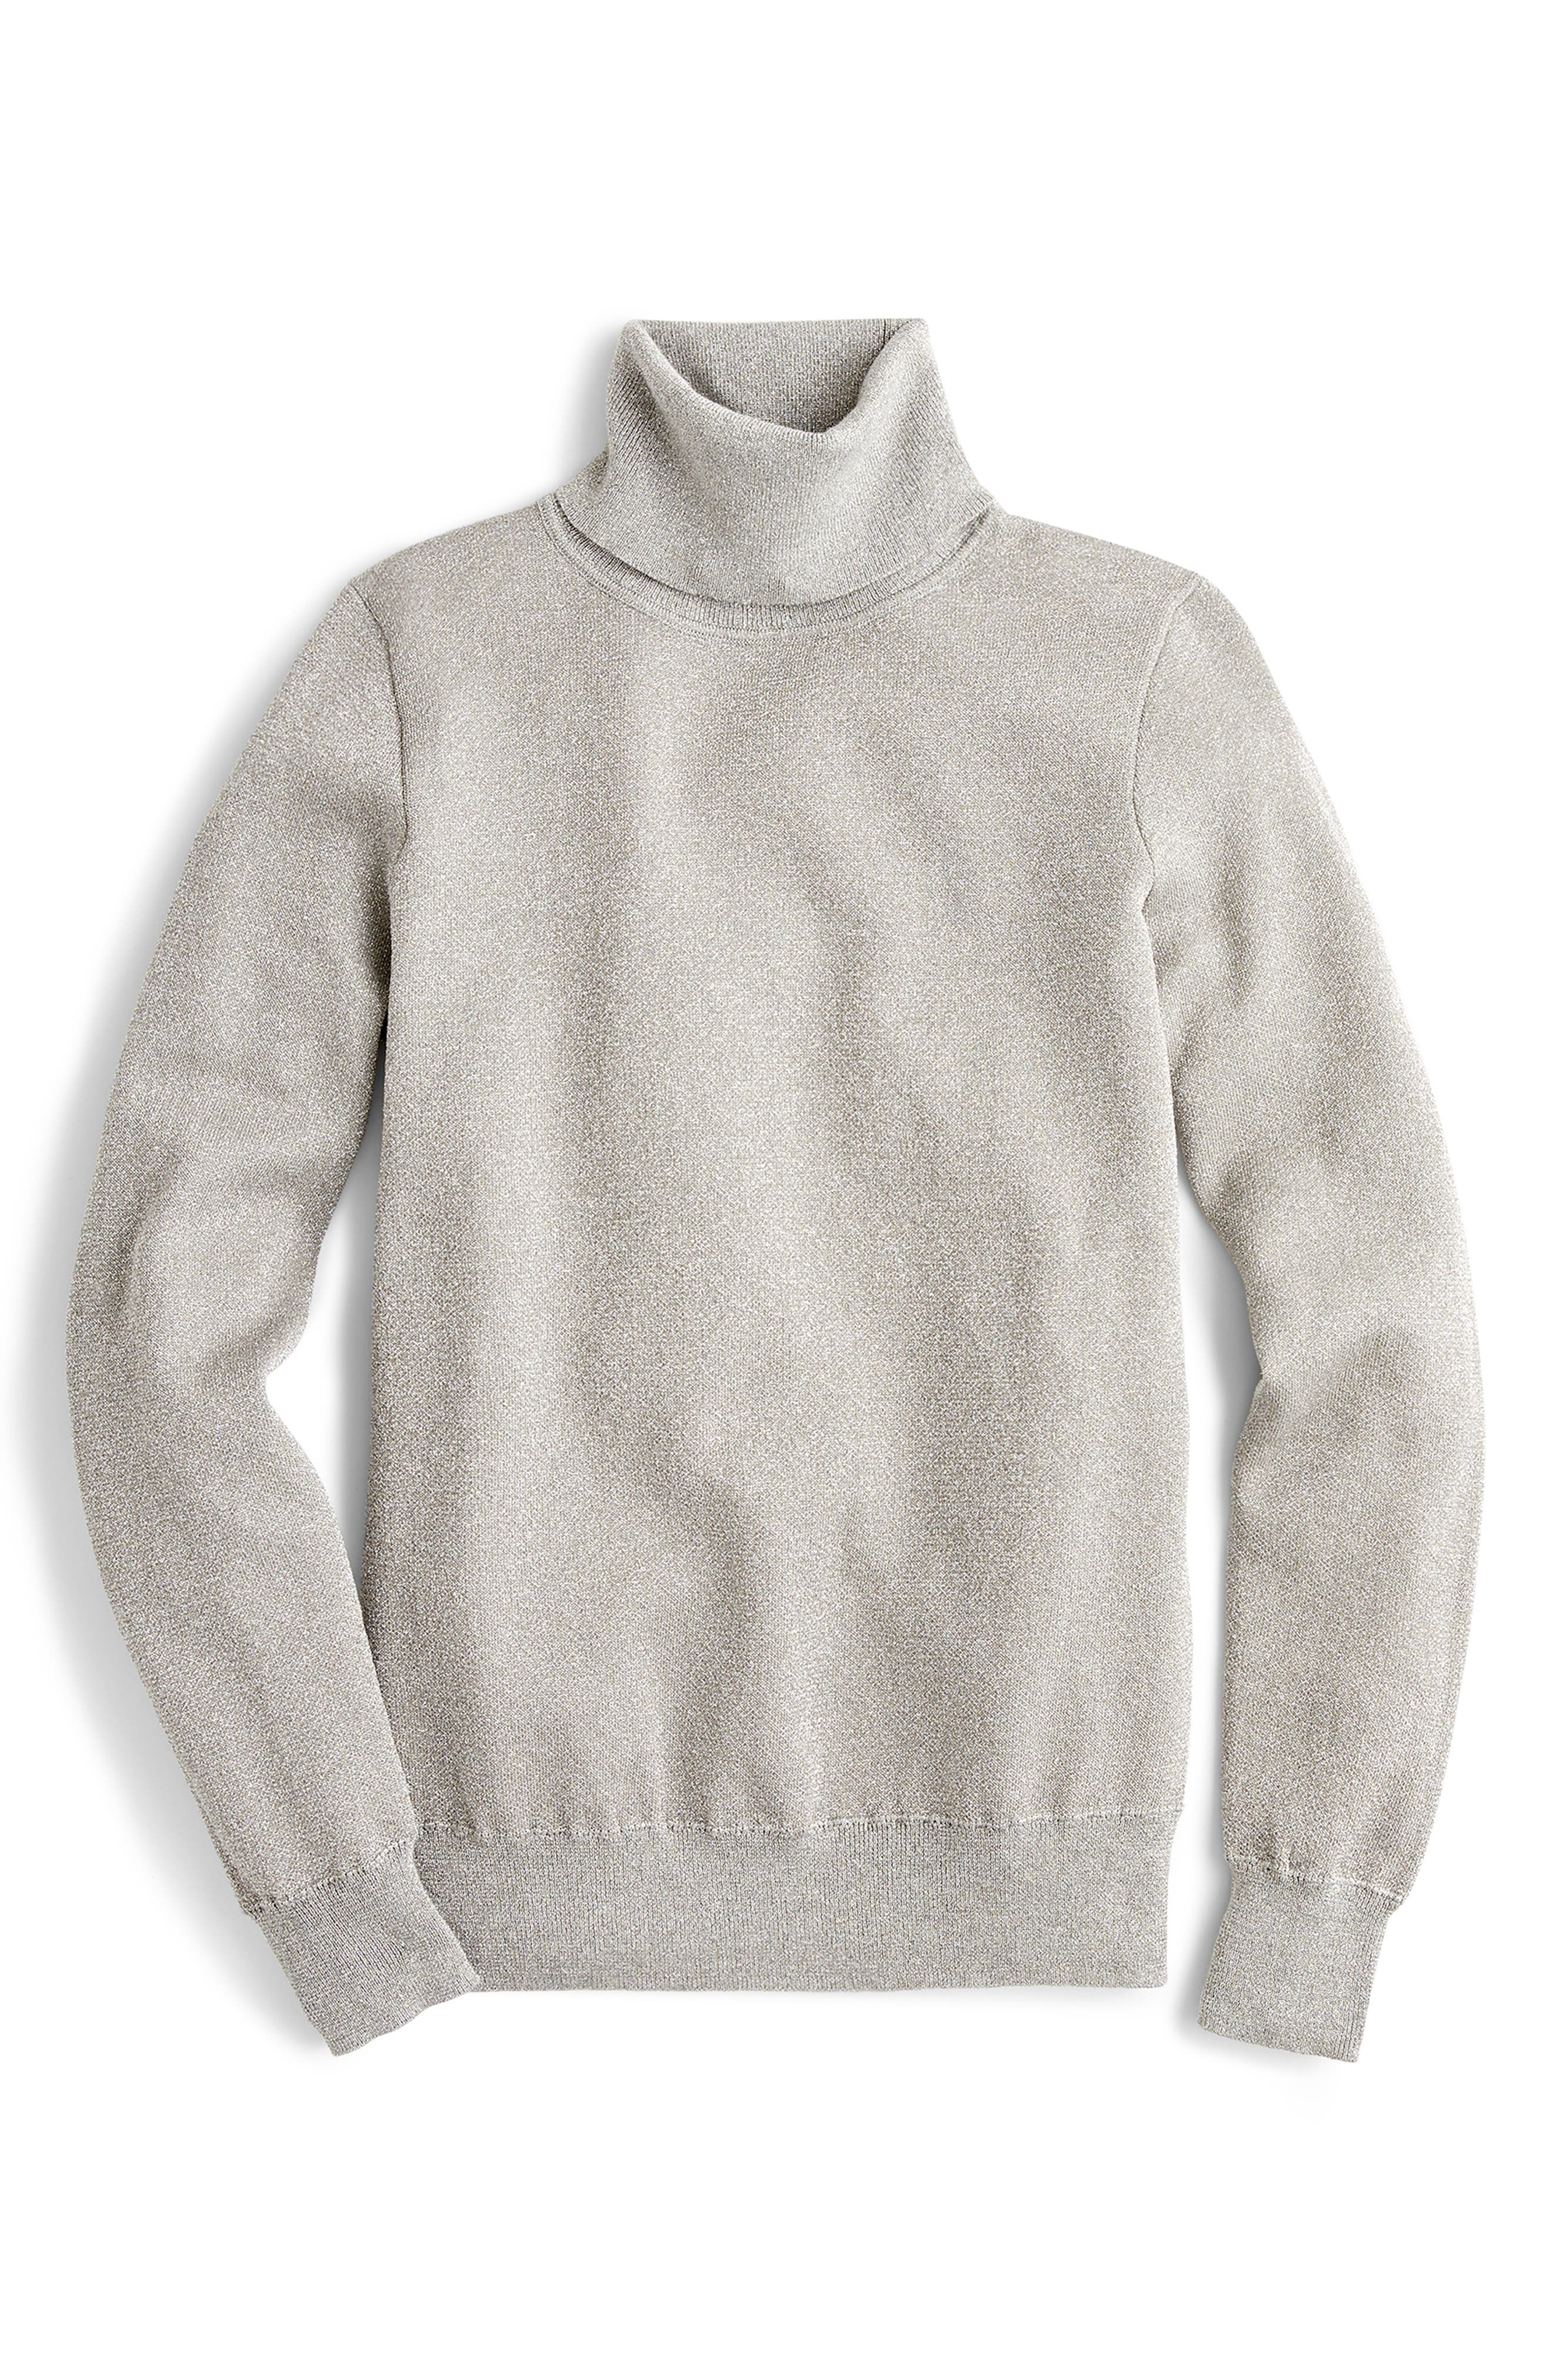 Tippi Lurex<sup>®</sup> Turtleneck Sweater, Main, color, 040